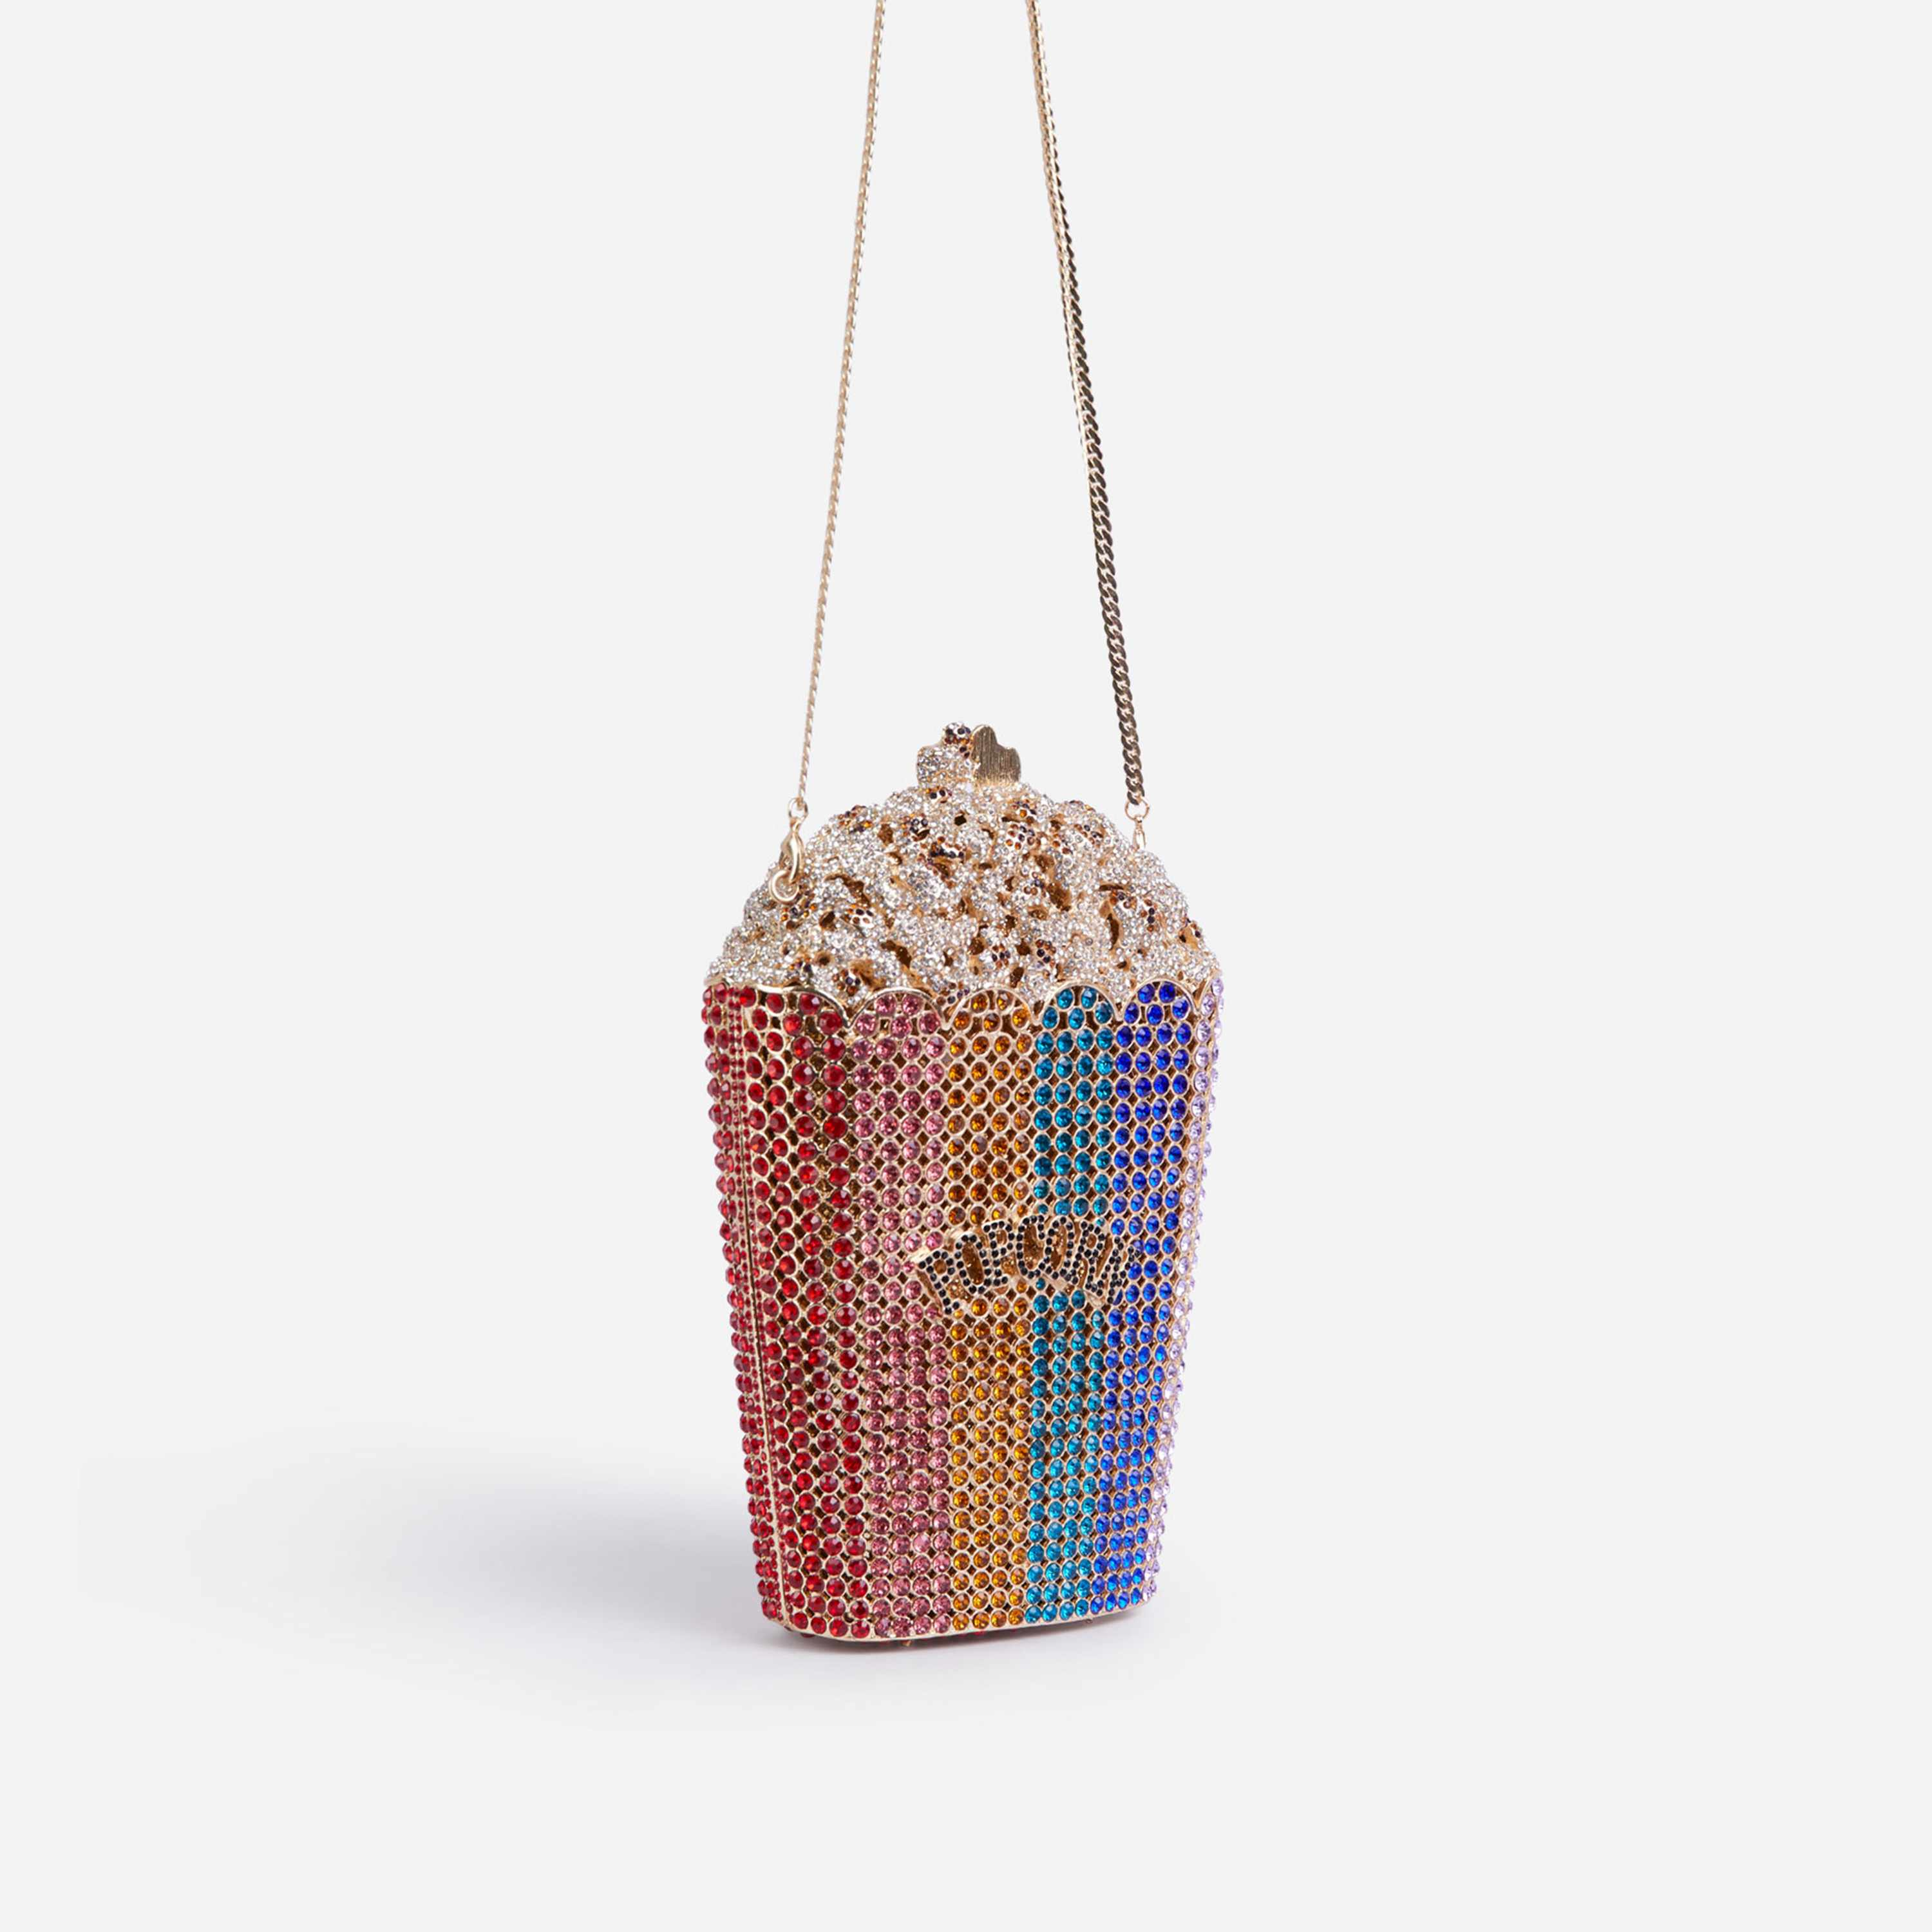 Premium Crystal Popcorn Cross Body Bag in Multi